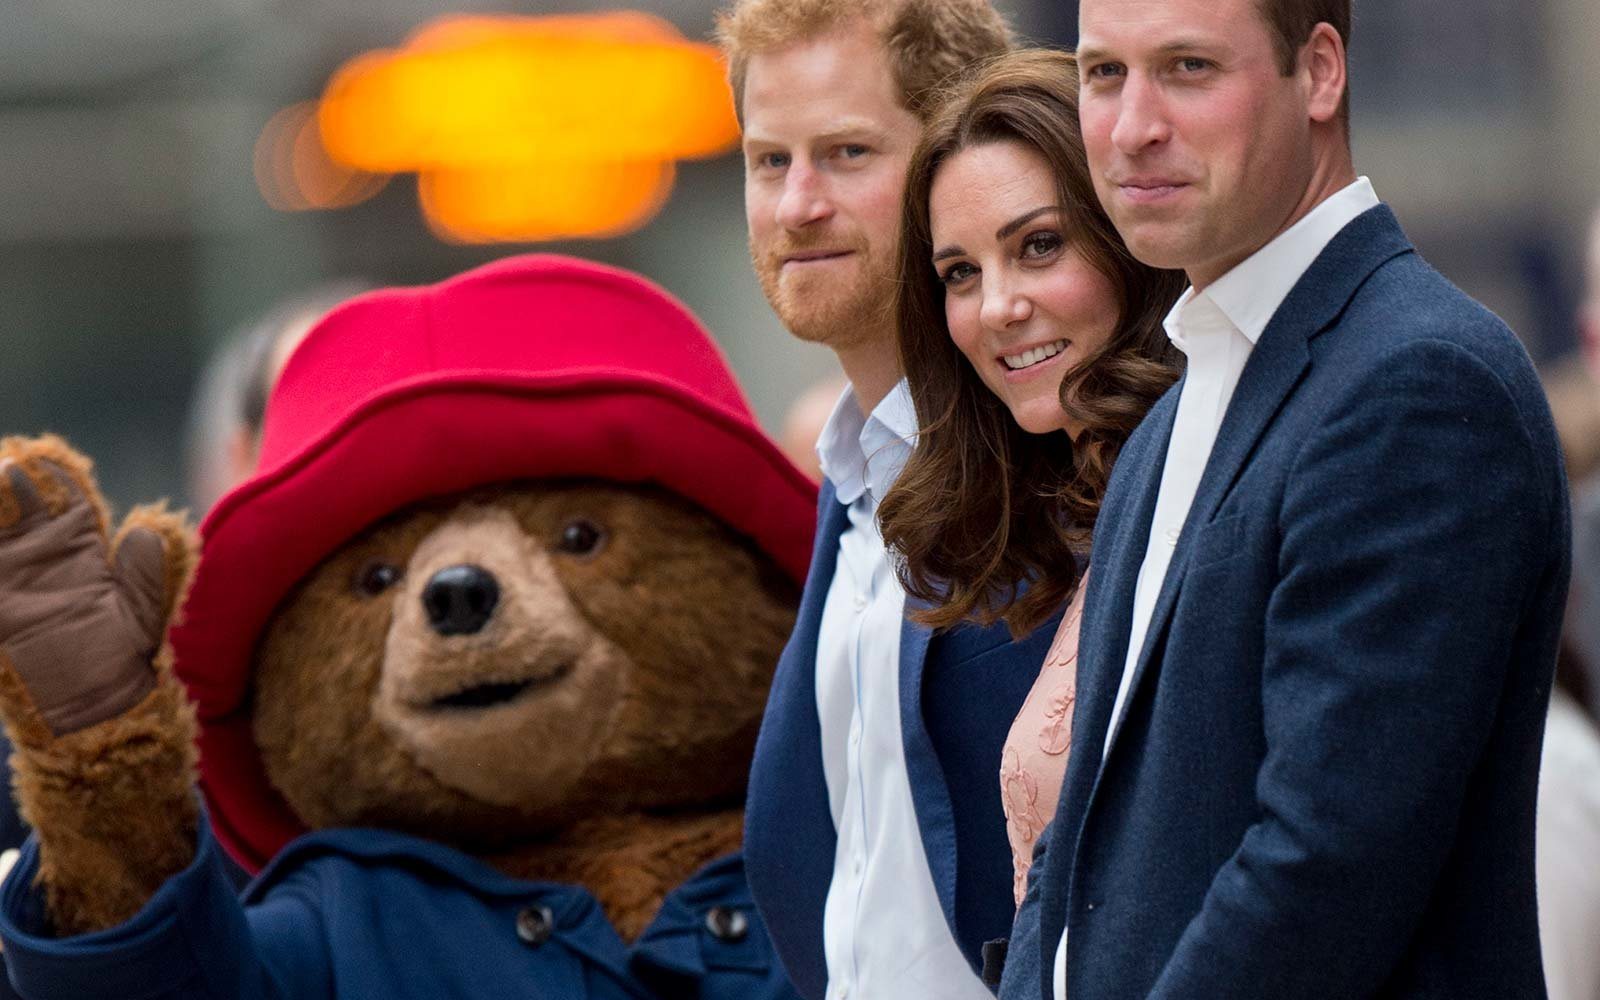 Kate Middleton Royal Haircut Paddington Bear Pancras Station London UK